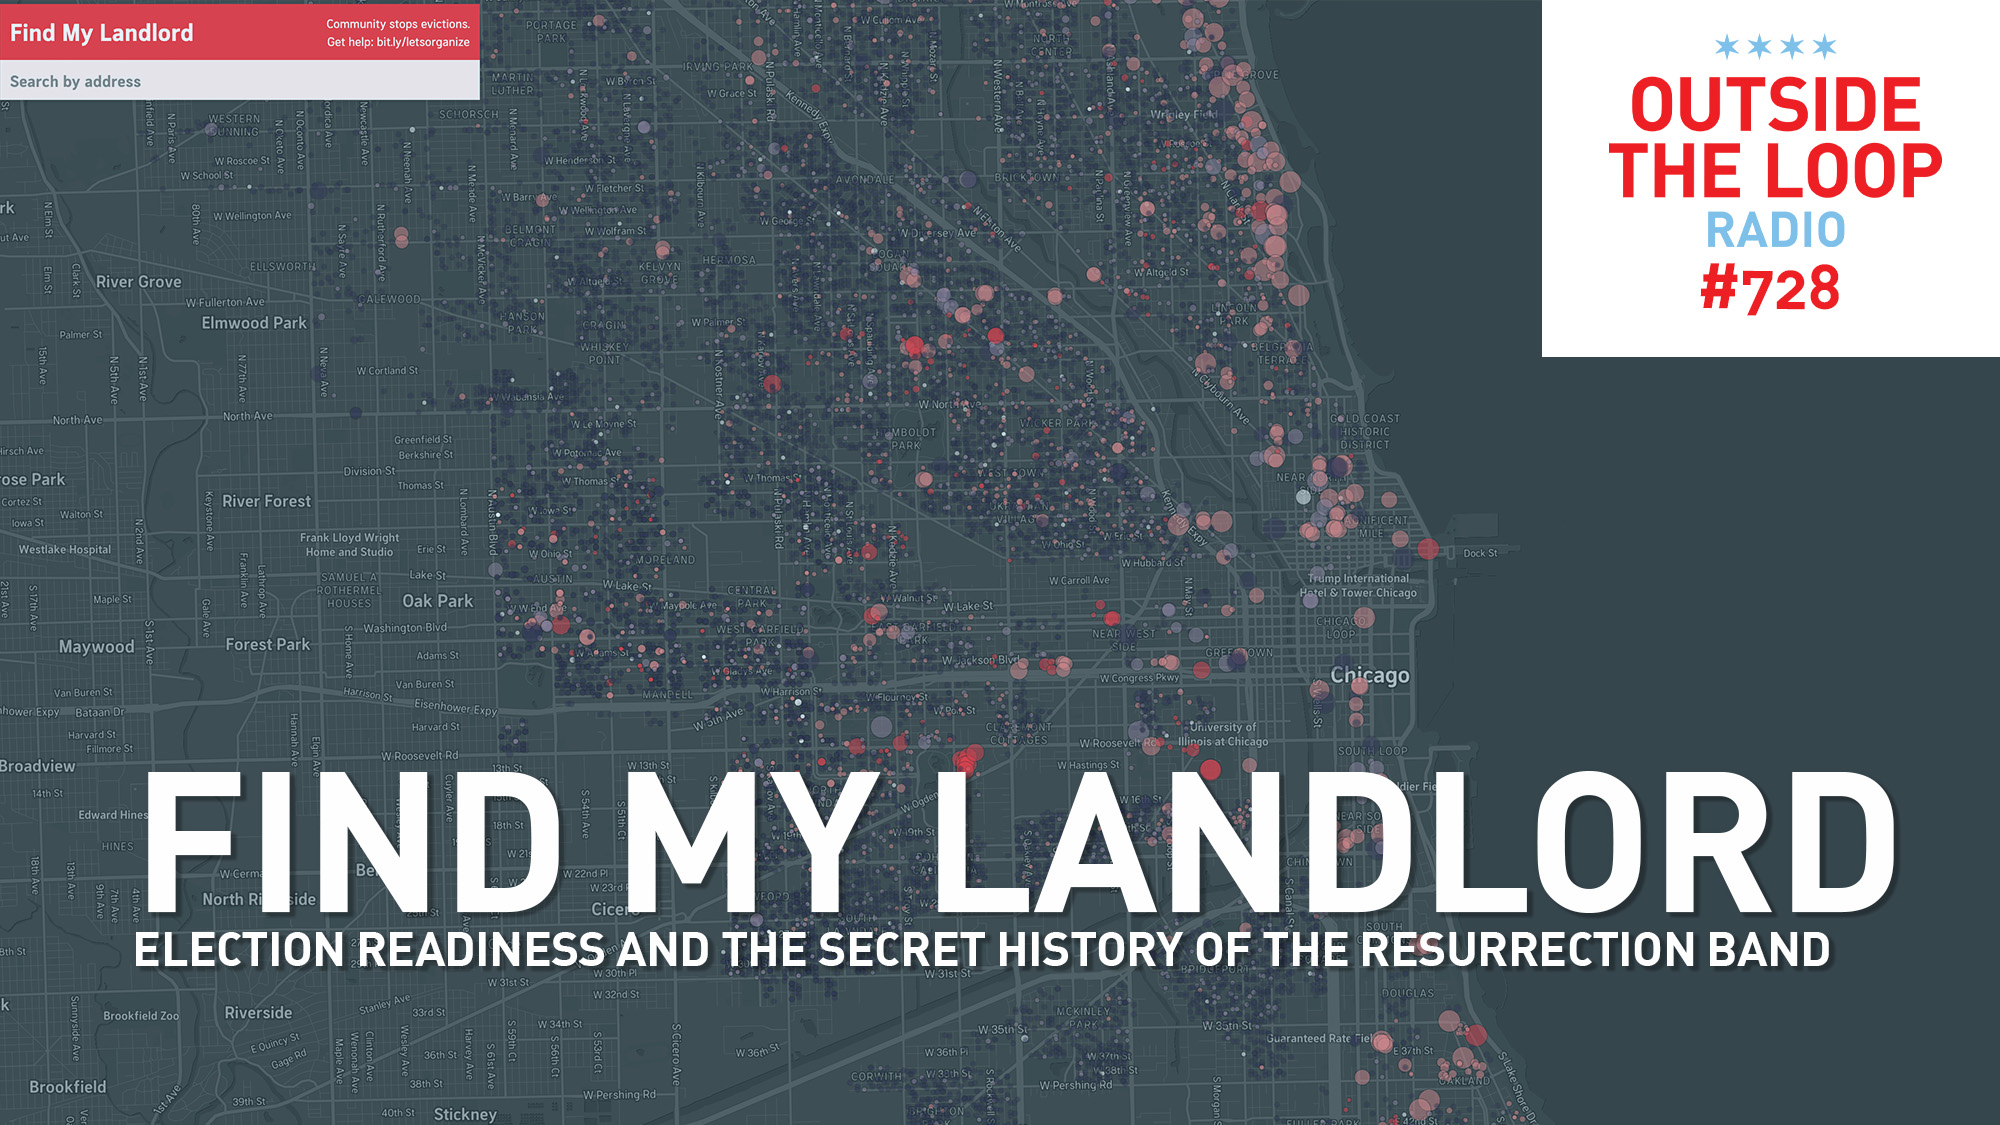 An image from the new interactive Find My Landlord site.